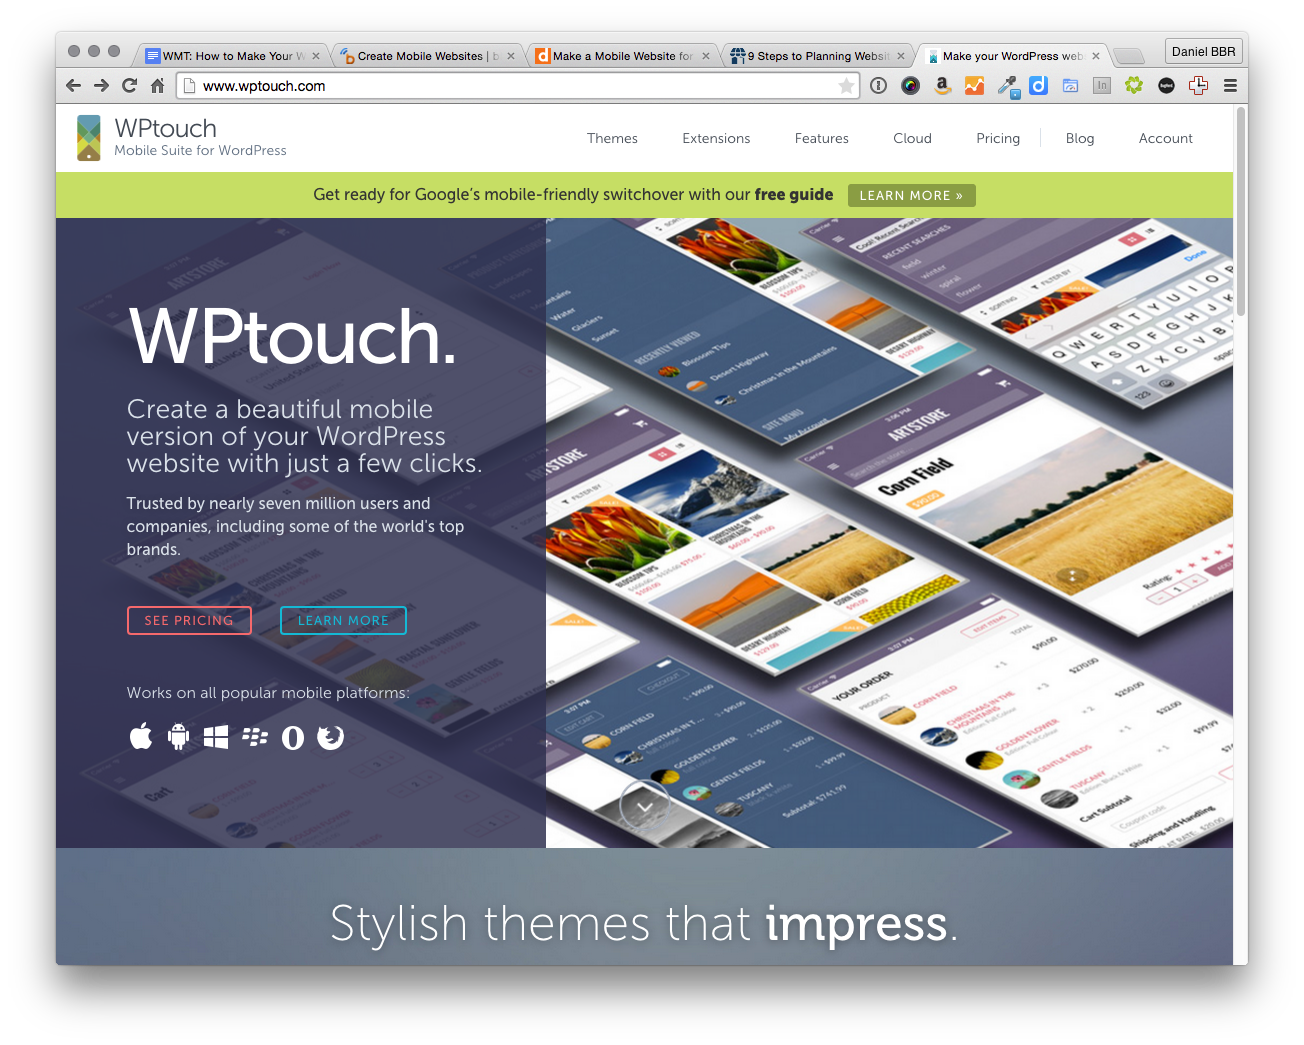 WP Touch is one of the best plugins for WordPress sites looking to add a custom mobile experience.